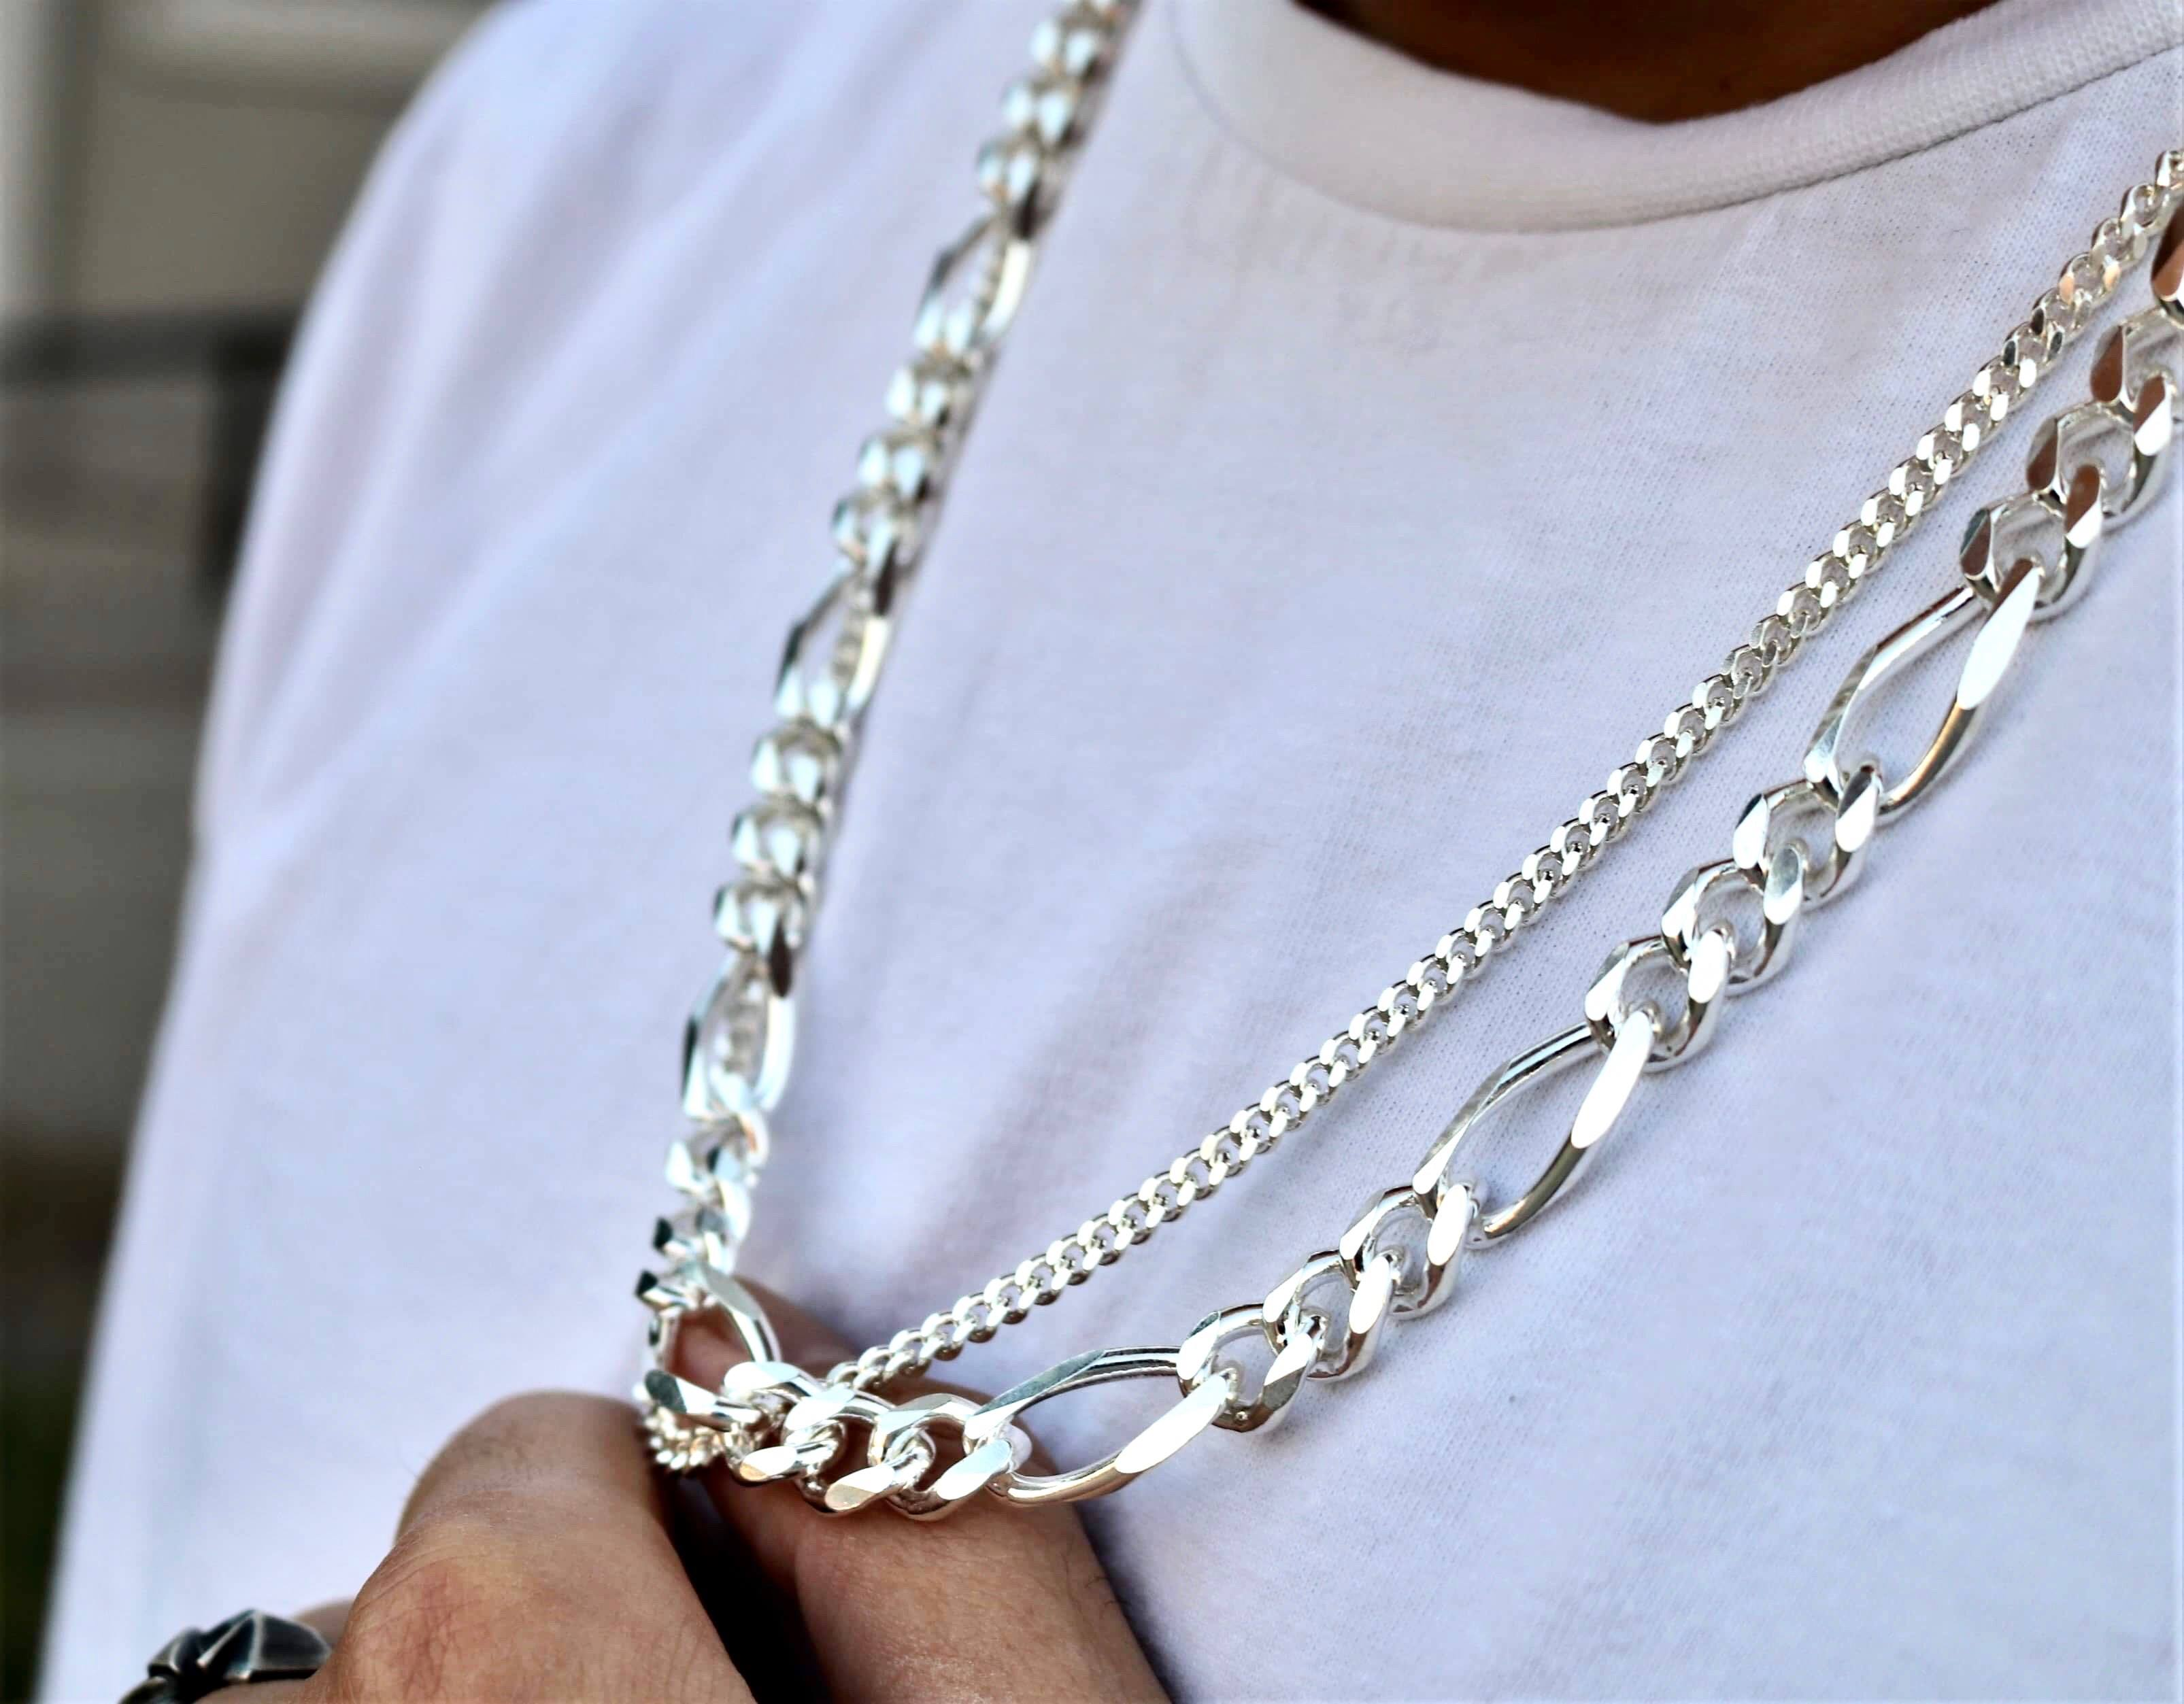 The W Brothers Sterling Silver 11 mm Figaro Chain in premium 925 Sterling silver with no recycled materials & no toxic metals. Our figaro chain is perfect for layering other chains and cuban chain necklaces, perfect for male fashion and accessories.